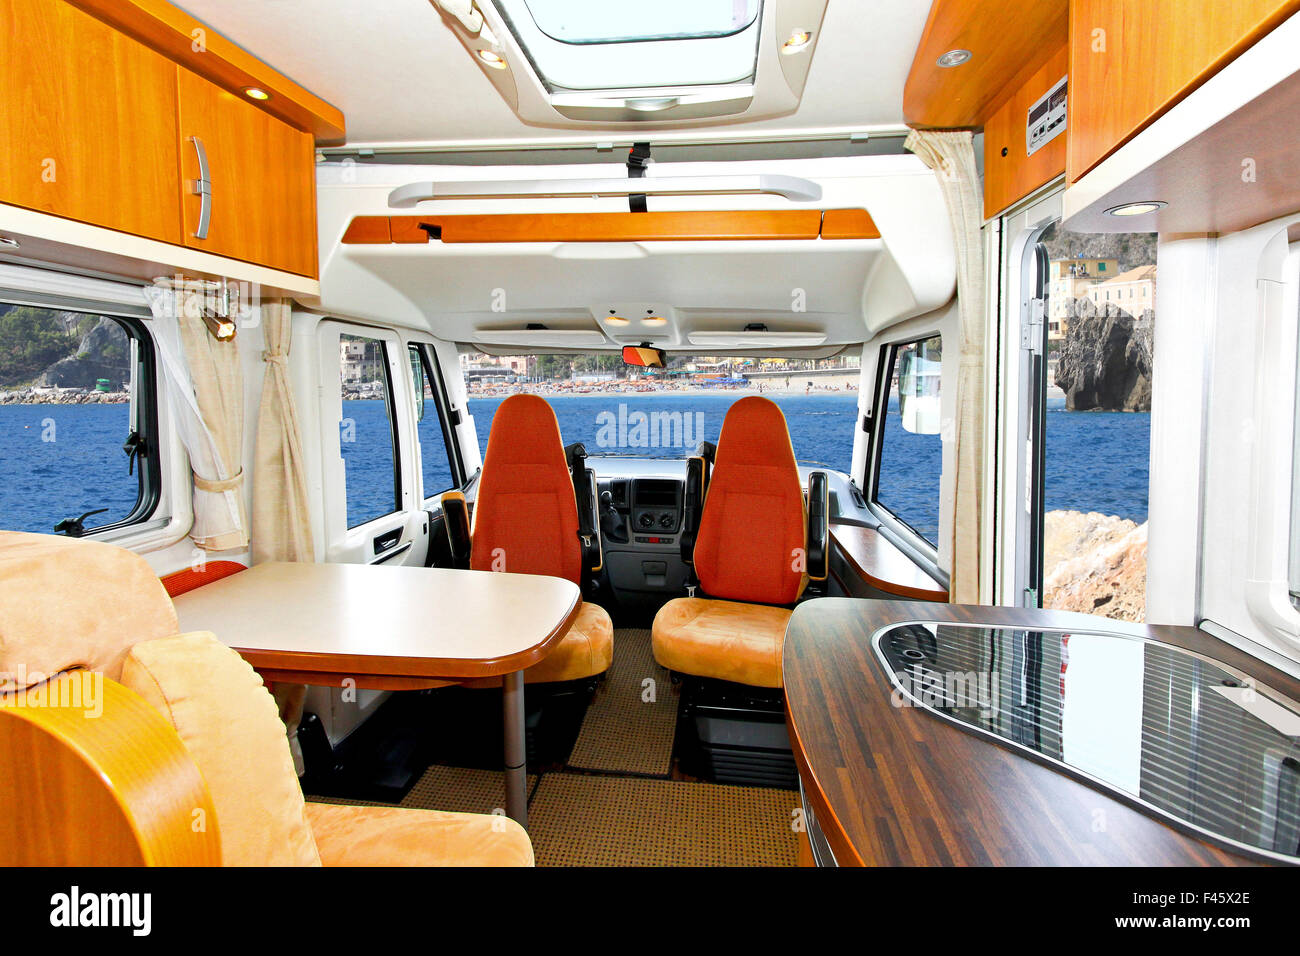 Innenausstattung Wohnmobil Caravan Interior Stockfotos And Caravan Interior Bilder Alamy